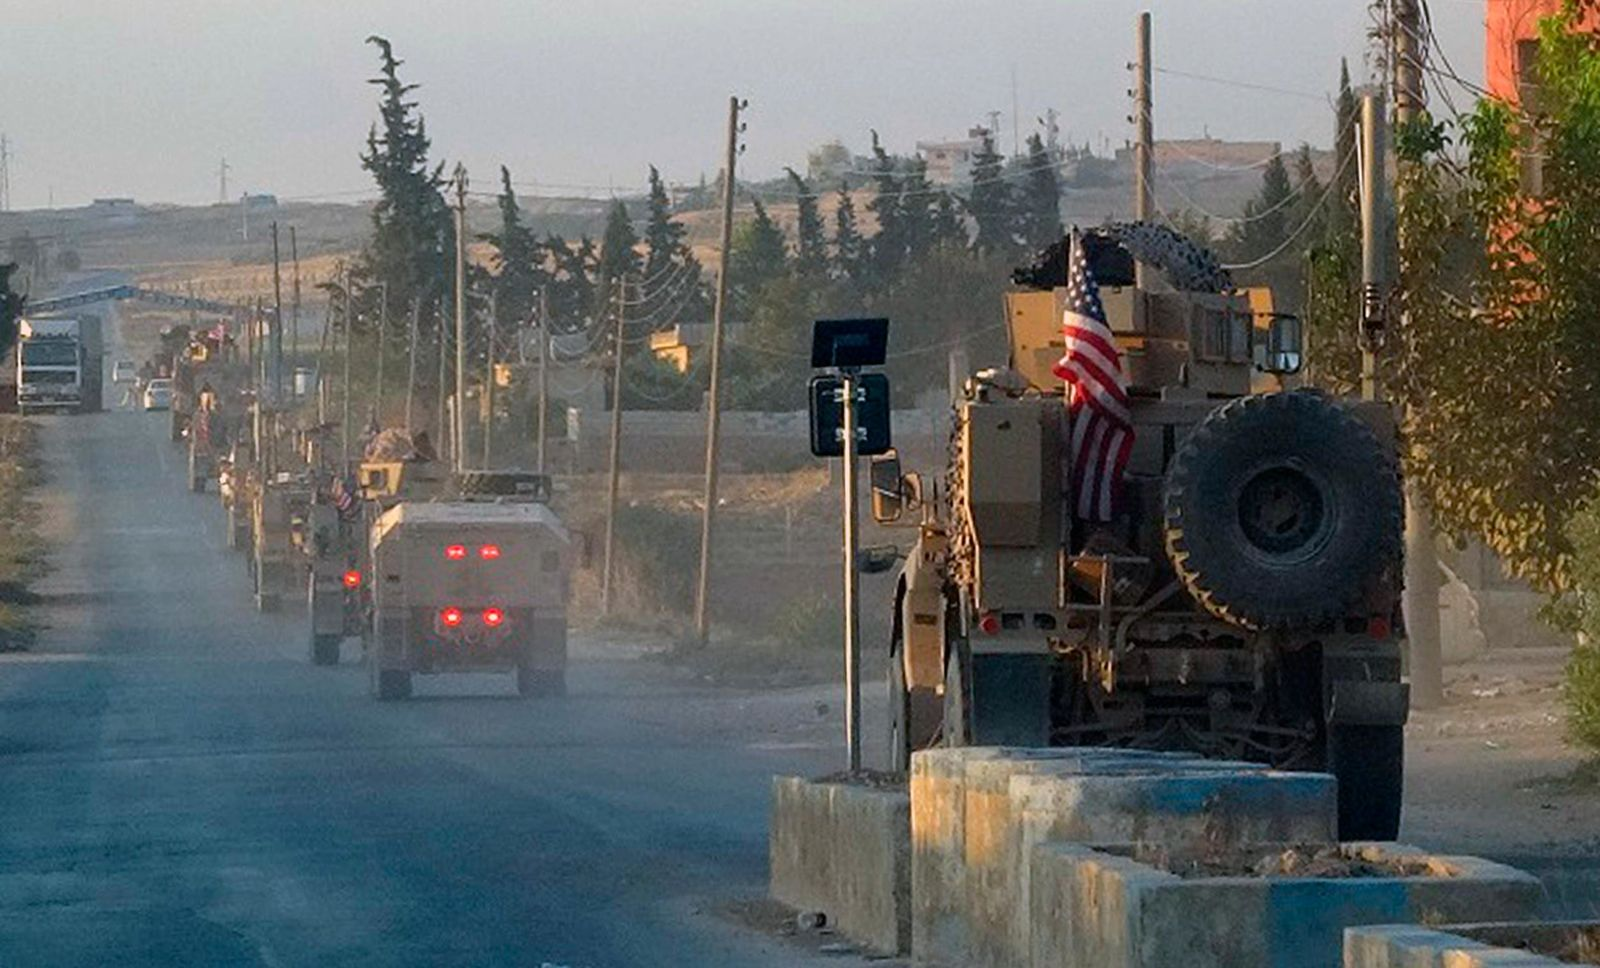 In this image provided by Hawar News Agency, ANHA, U.S. military vehicles travel down a main road in northeast Syria, Monday, Oct. 7, 2019. U.S.-backed Kurdish-led forces in Syria said American troops began withdrawing Monday from their positions along Turkey's border in northeastern Syria. (ANHA via AP)